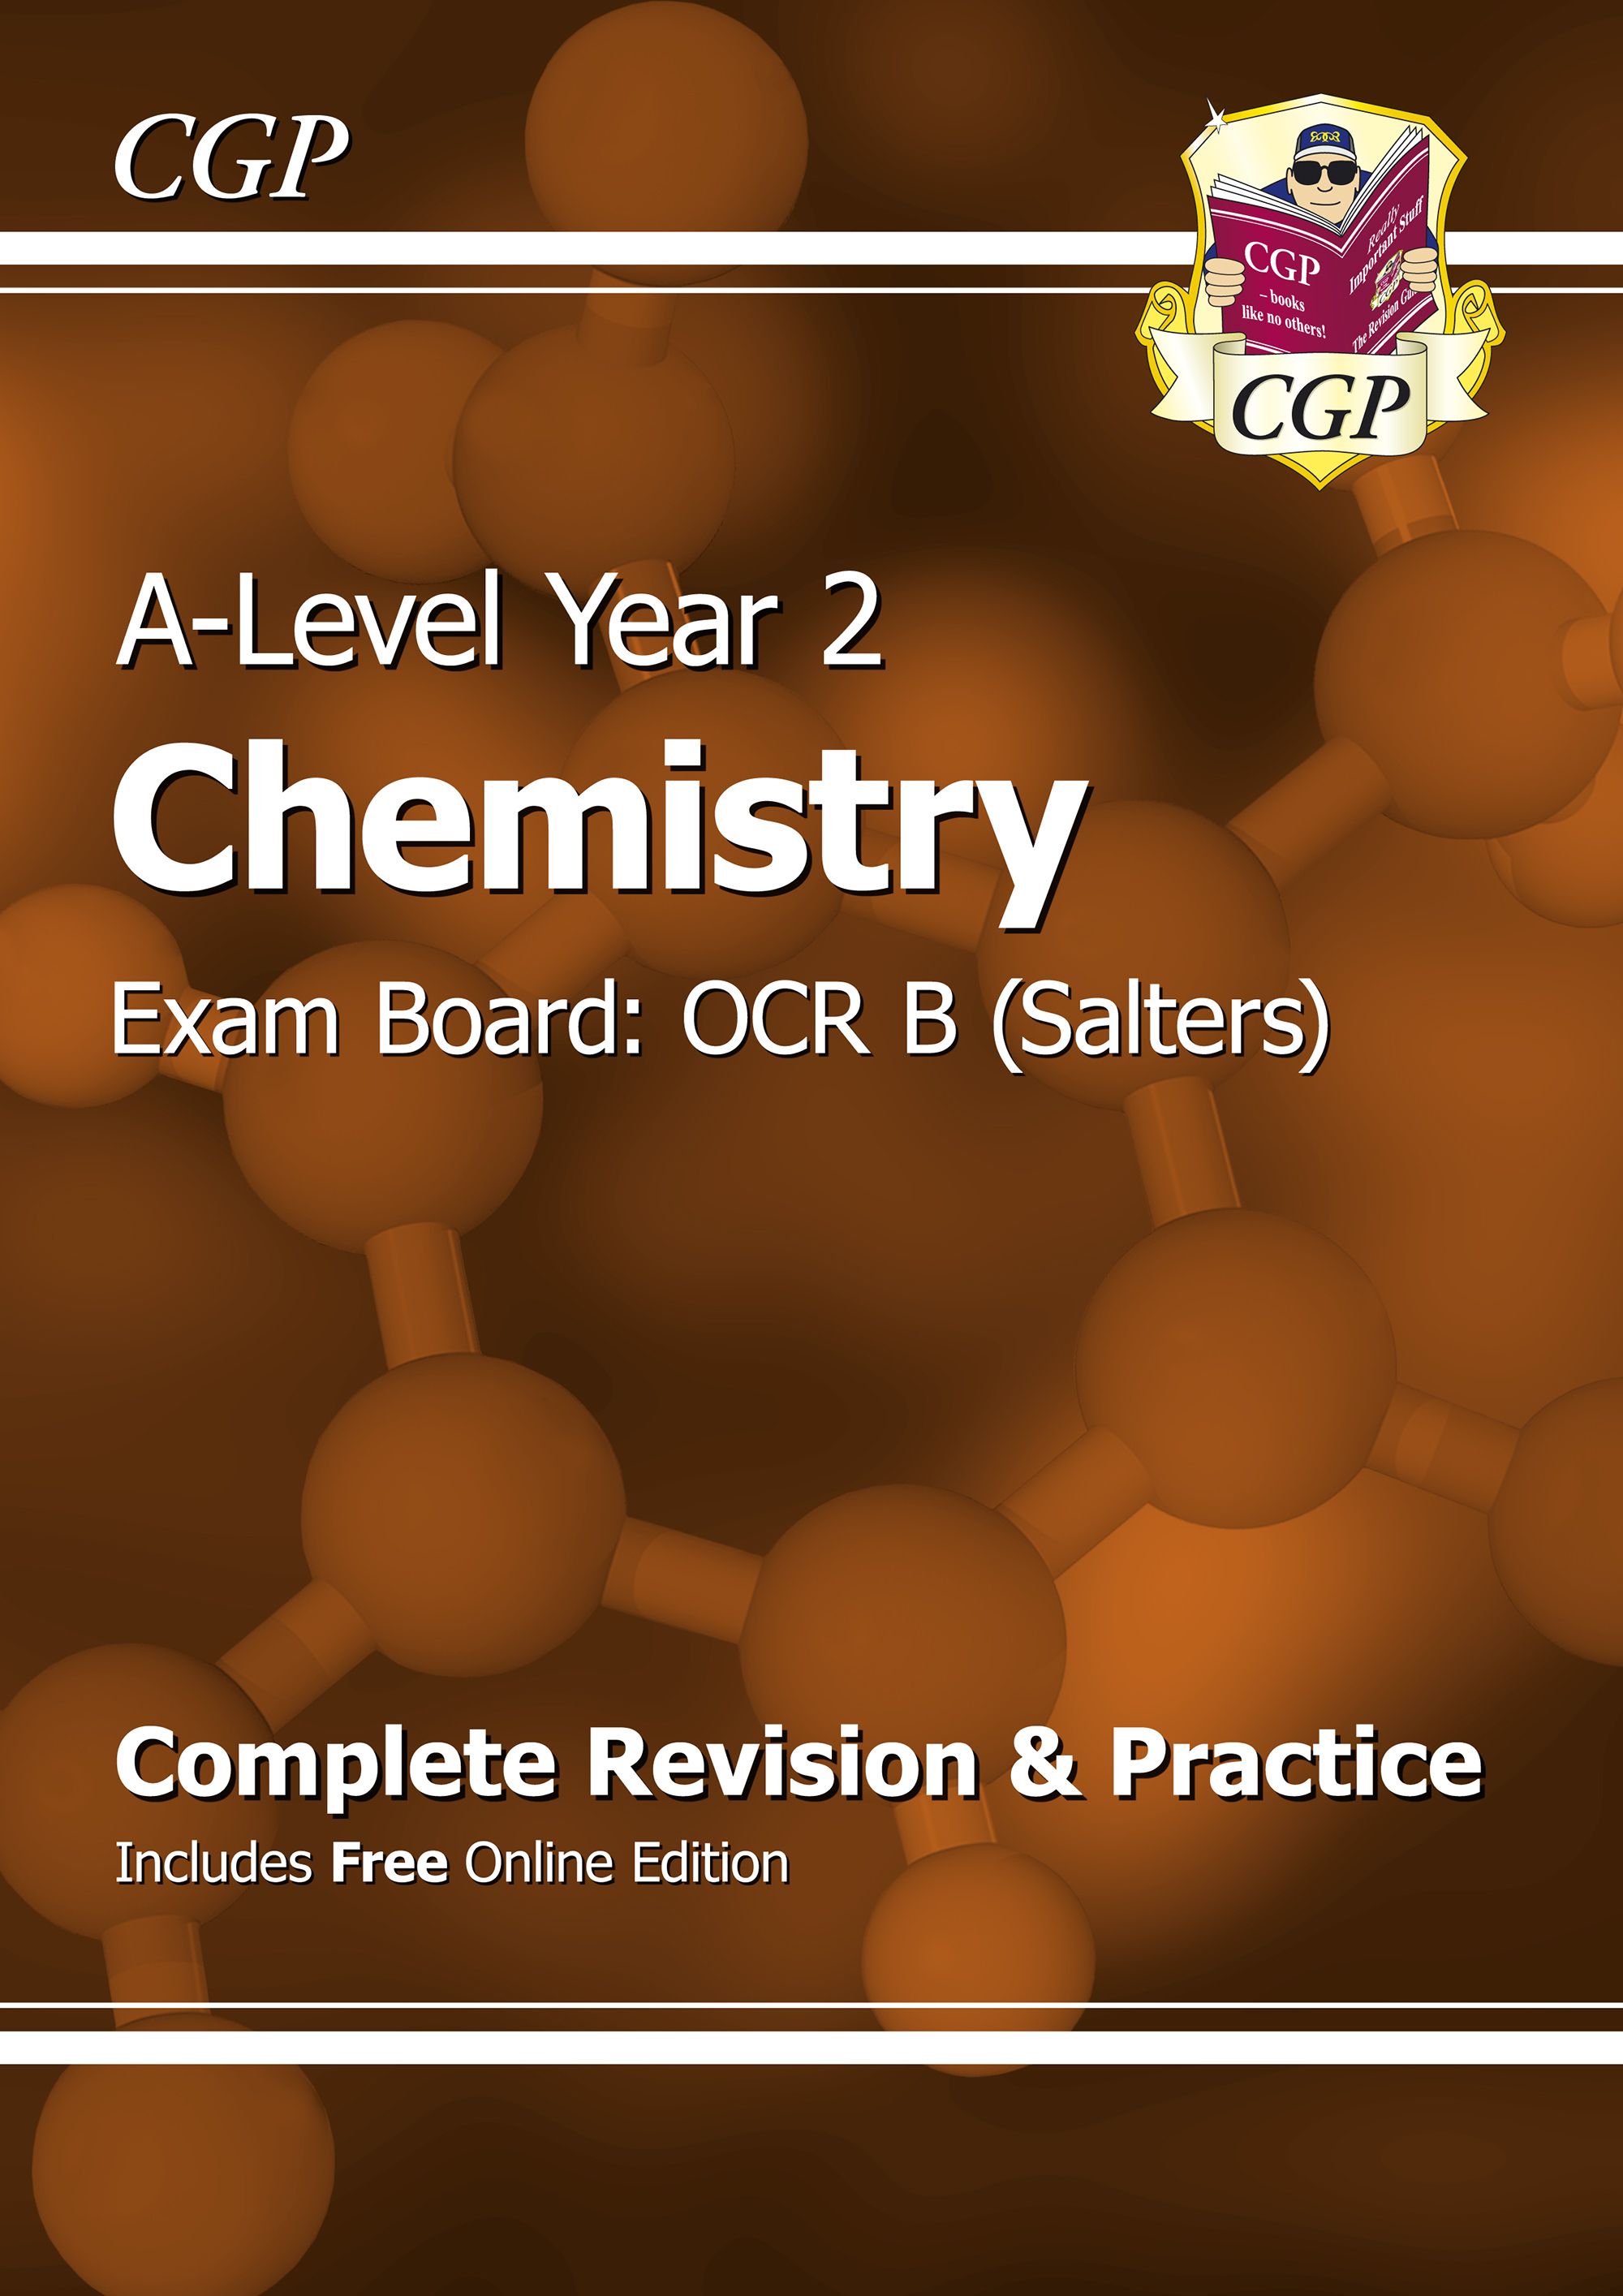 CRBR62 - A-Level Chemistry: OCR B Year 2 Complete Revision & Practice with Online Edition